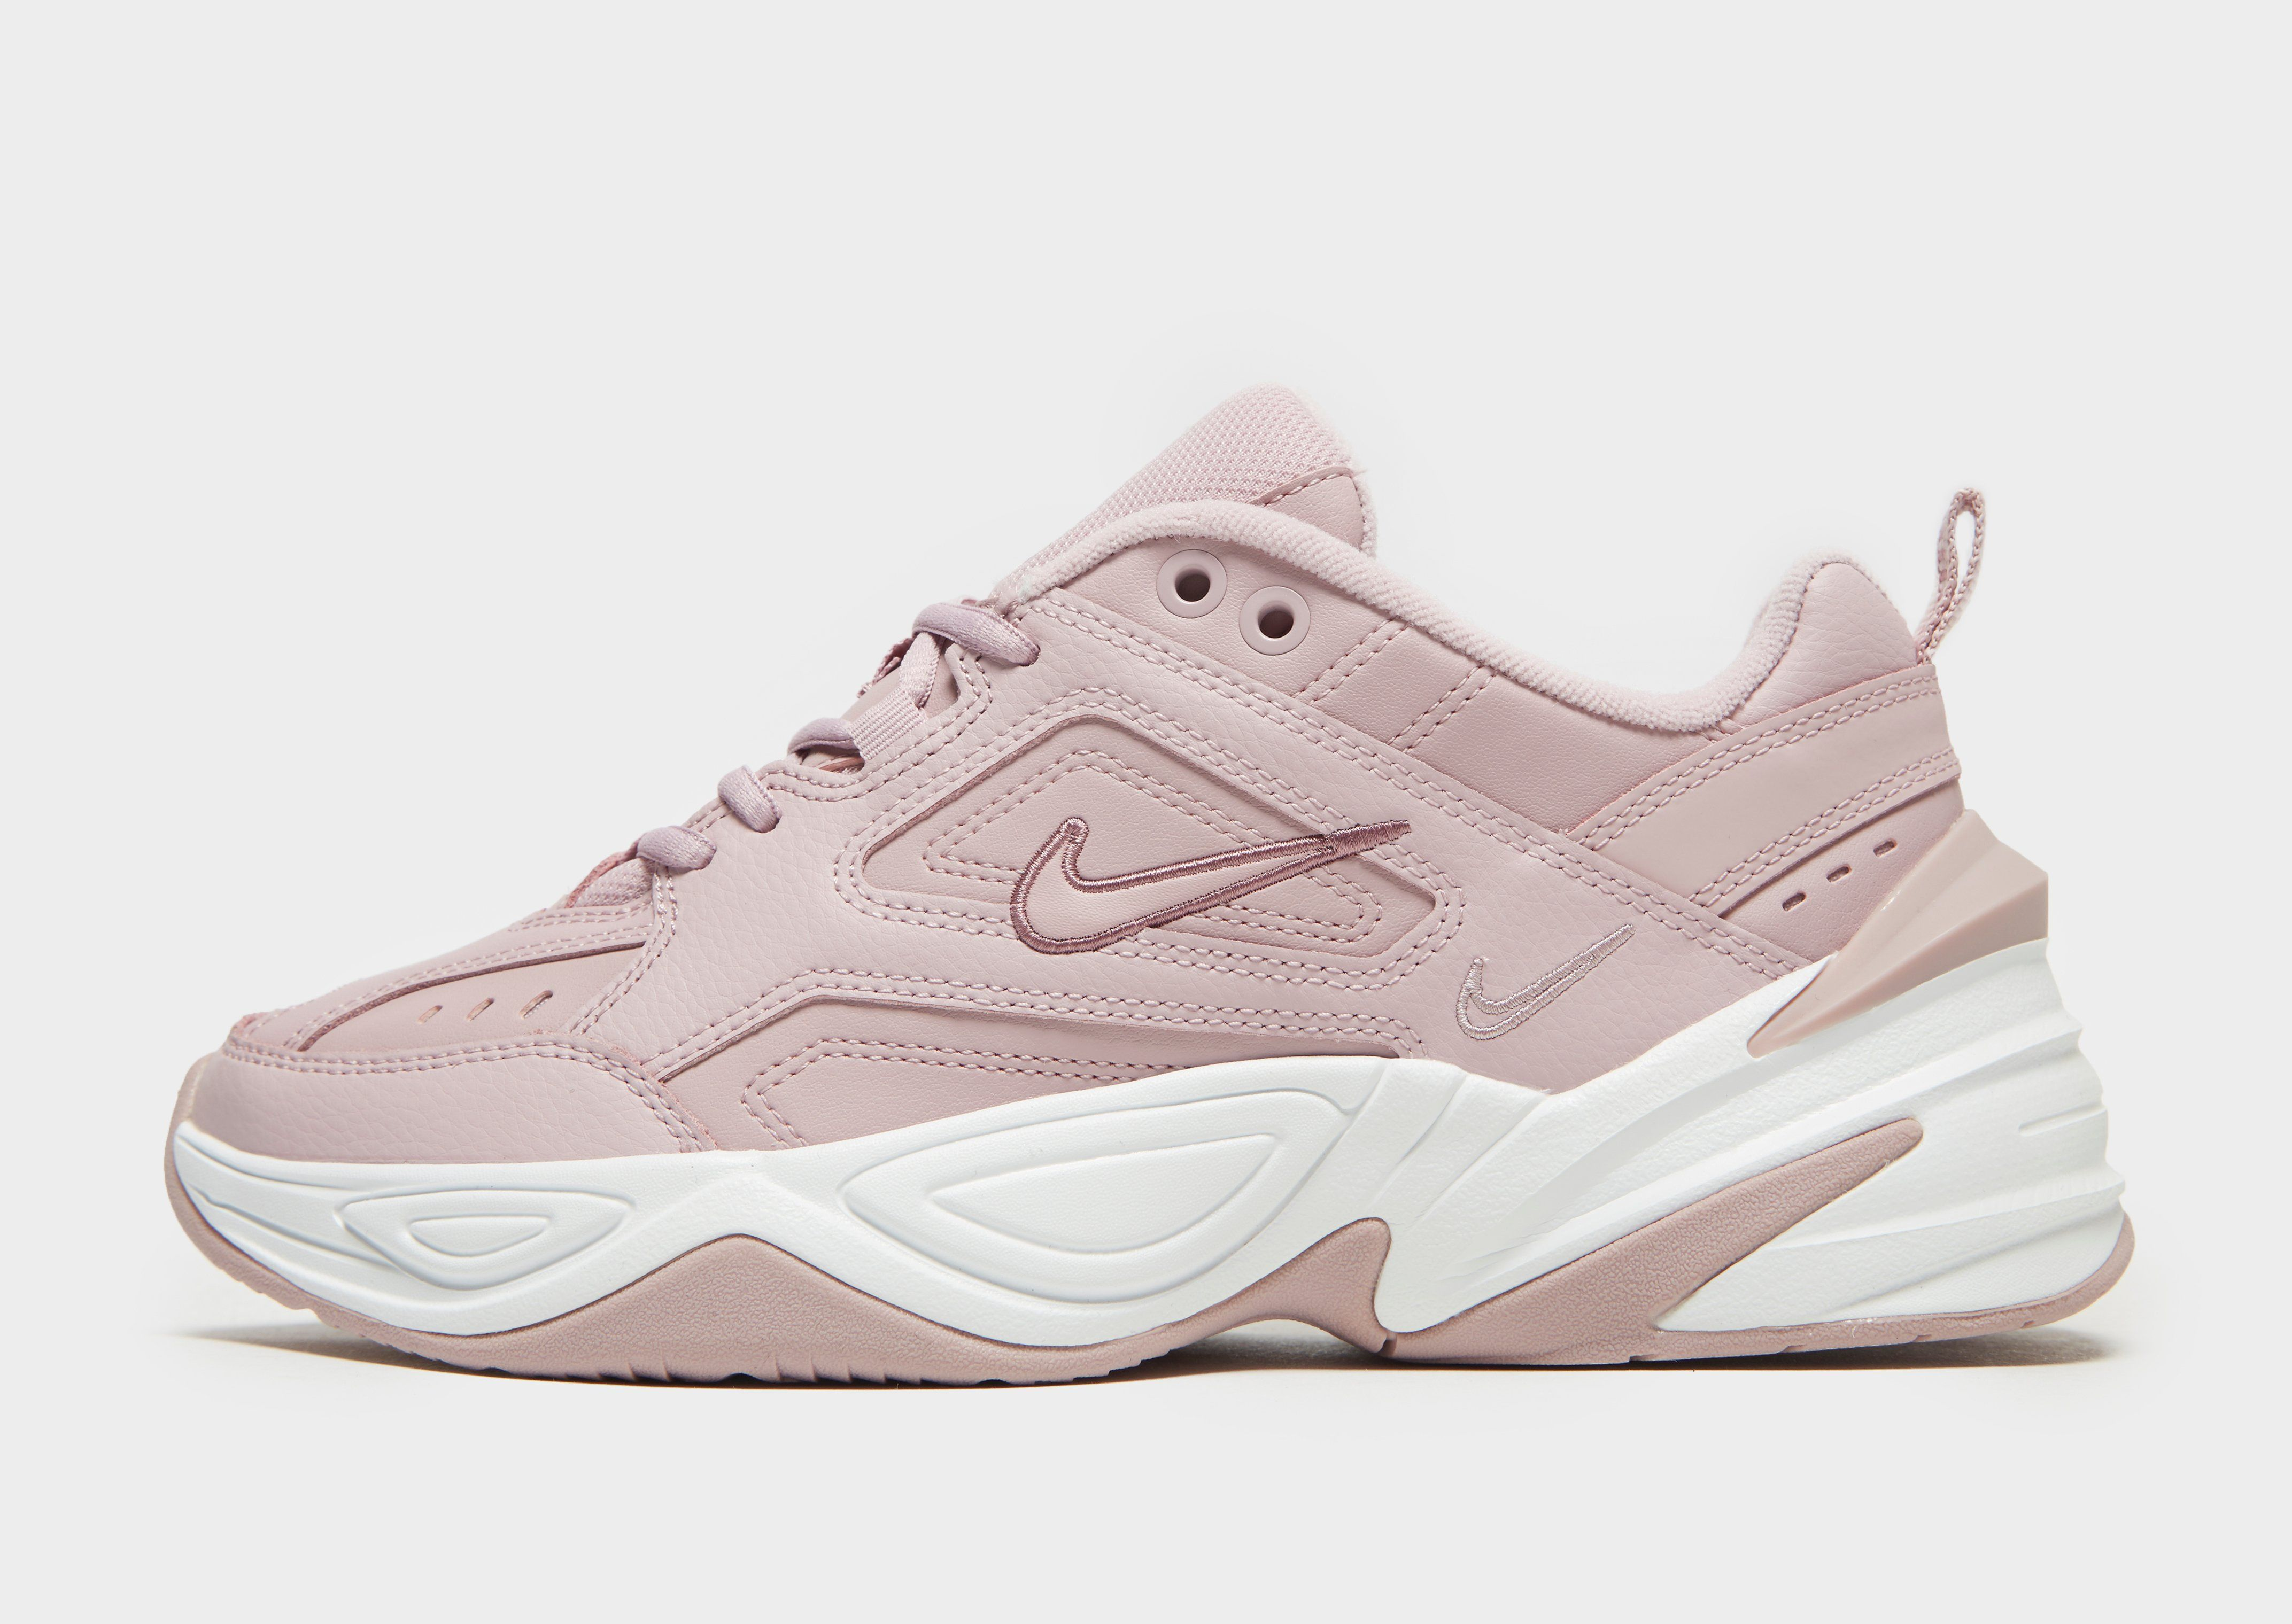 first look good reputable site Nike M2K Tekno Femme in 2019 | Sneakers | Jd sports, Nike ...